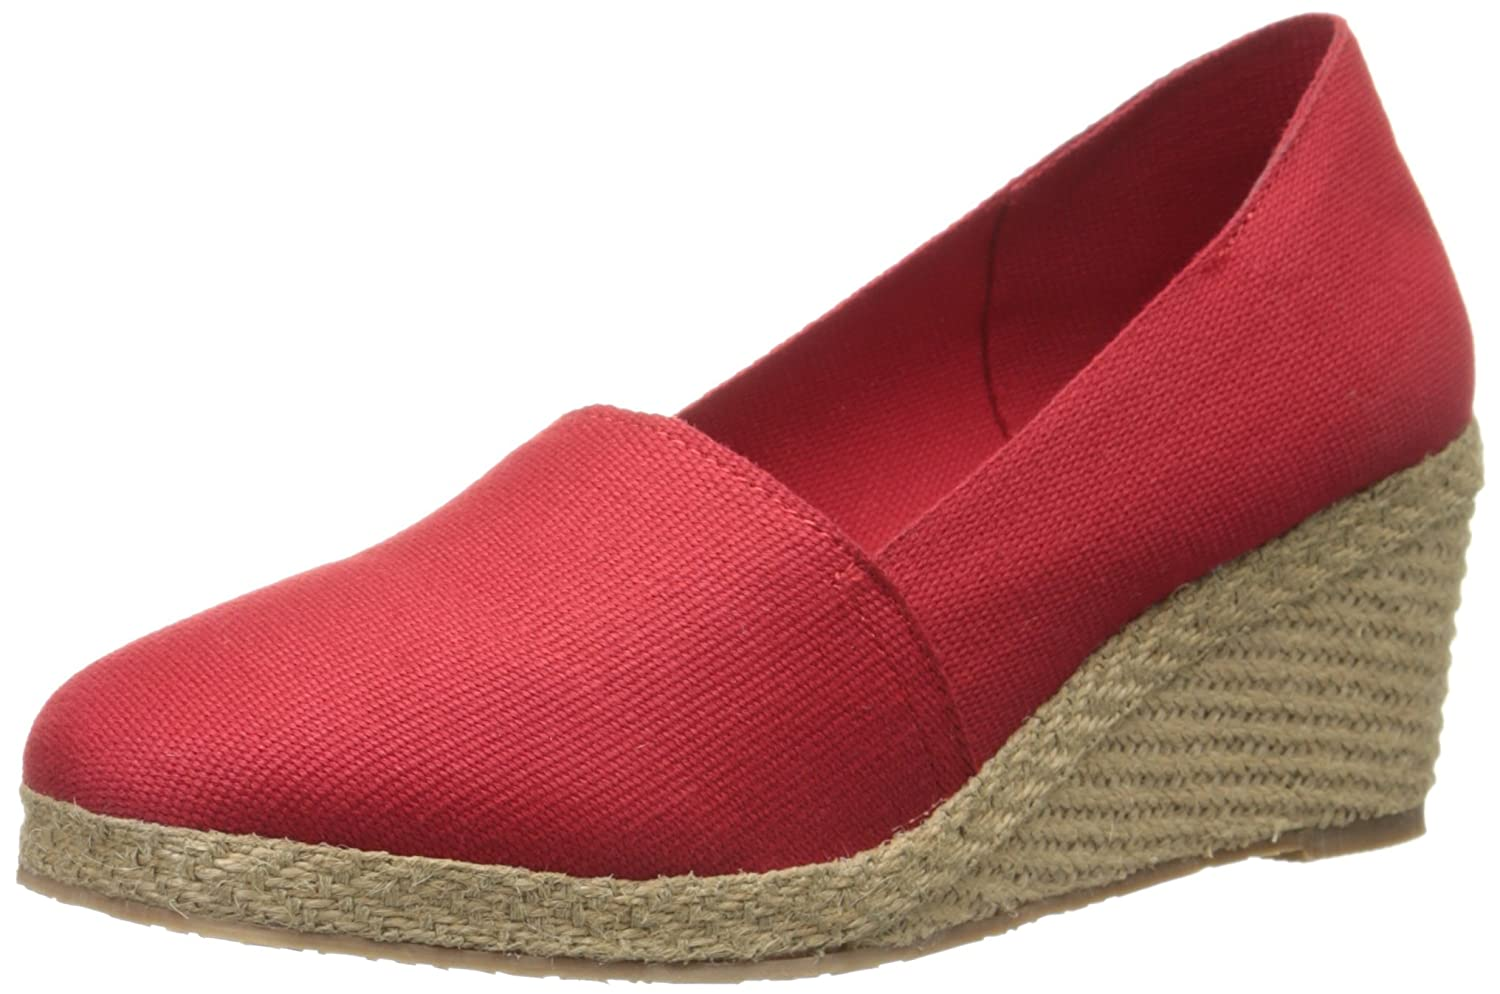 André Assous Women's Pammie B00XFAIPBS 6 B(M) US|Red